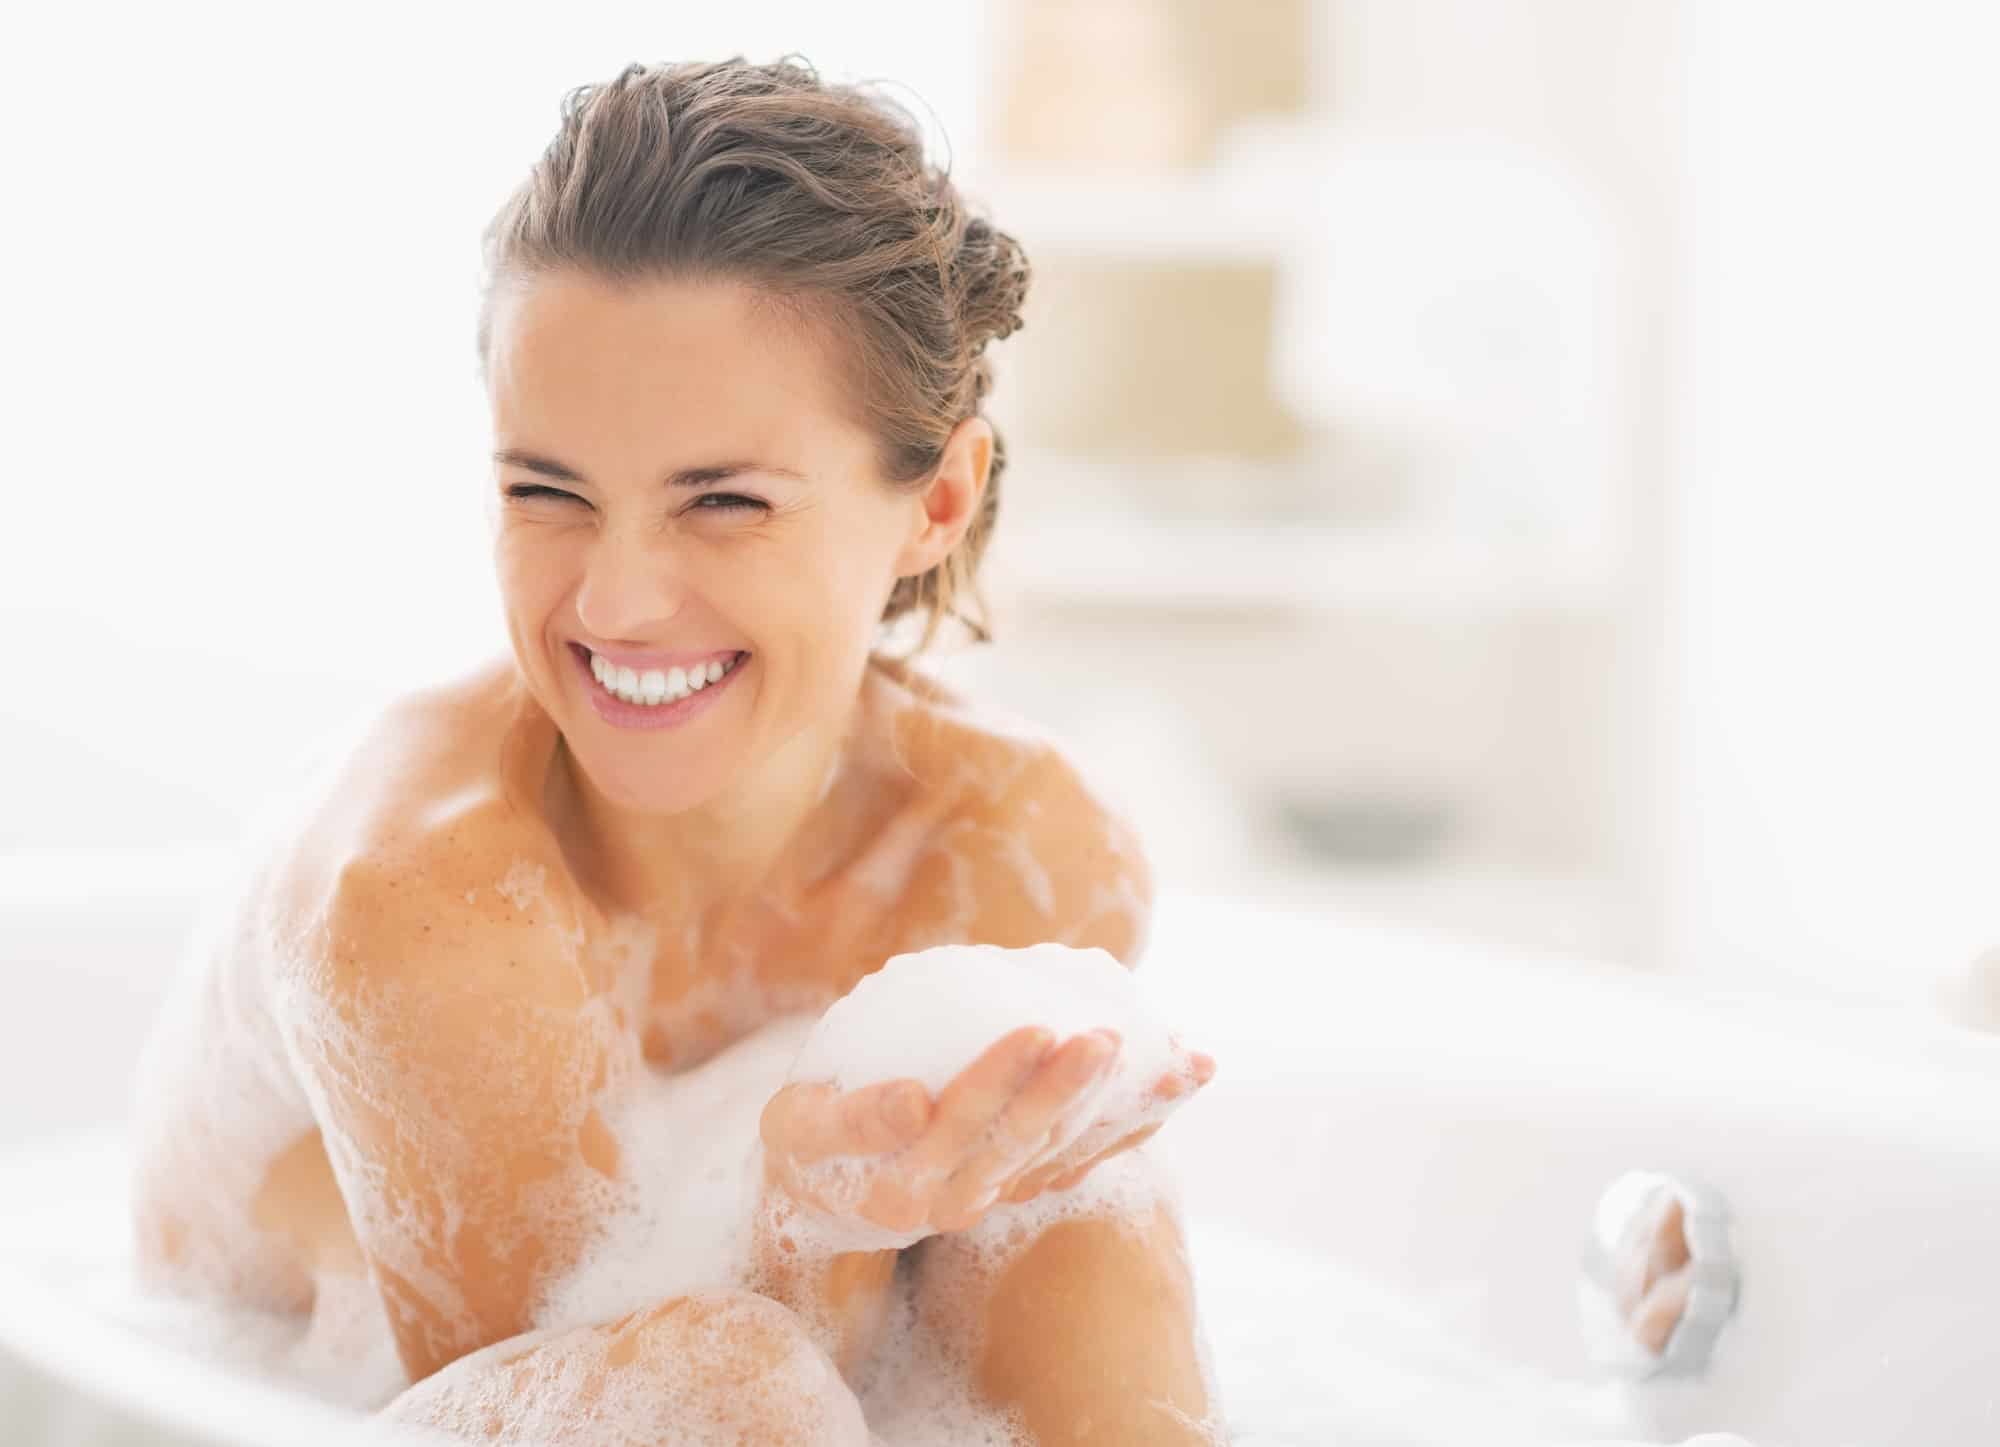 Whats the Best Exfoliating Body Wash for Keratosis Pilaris?